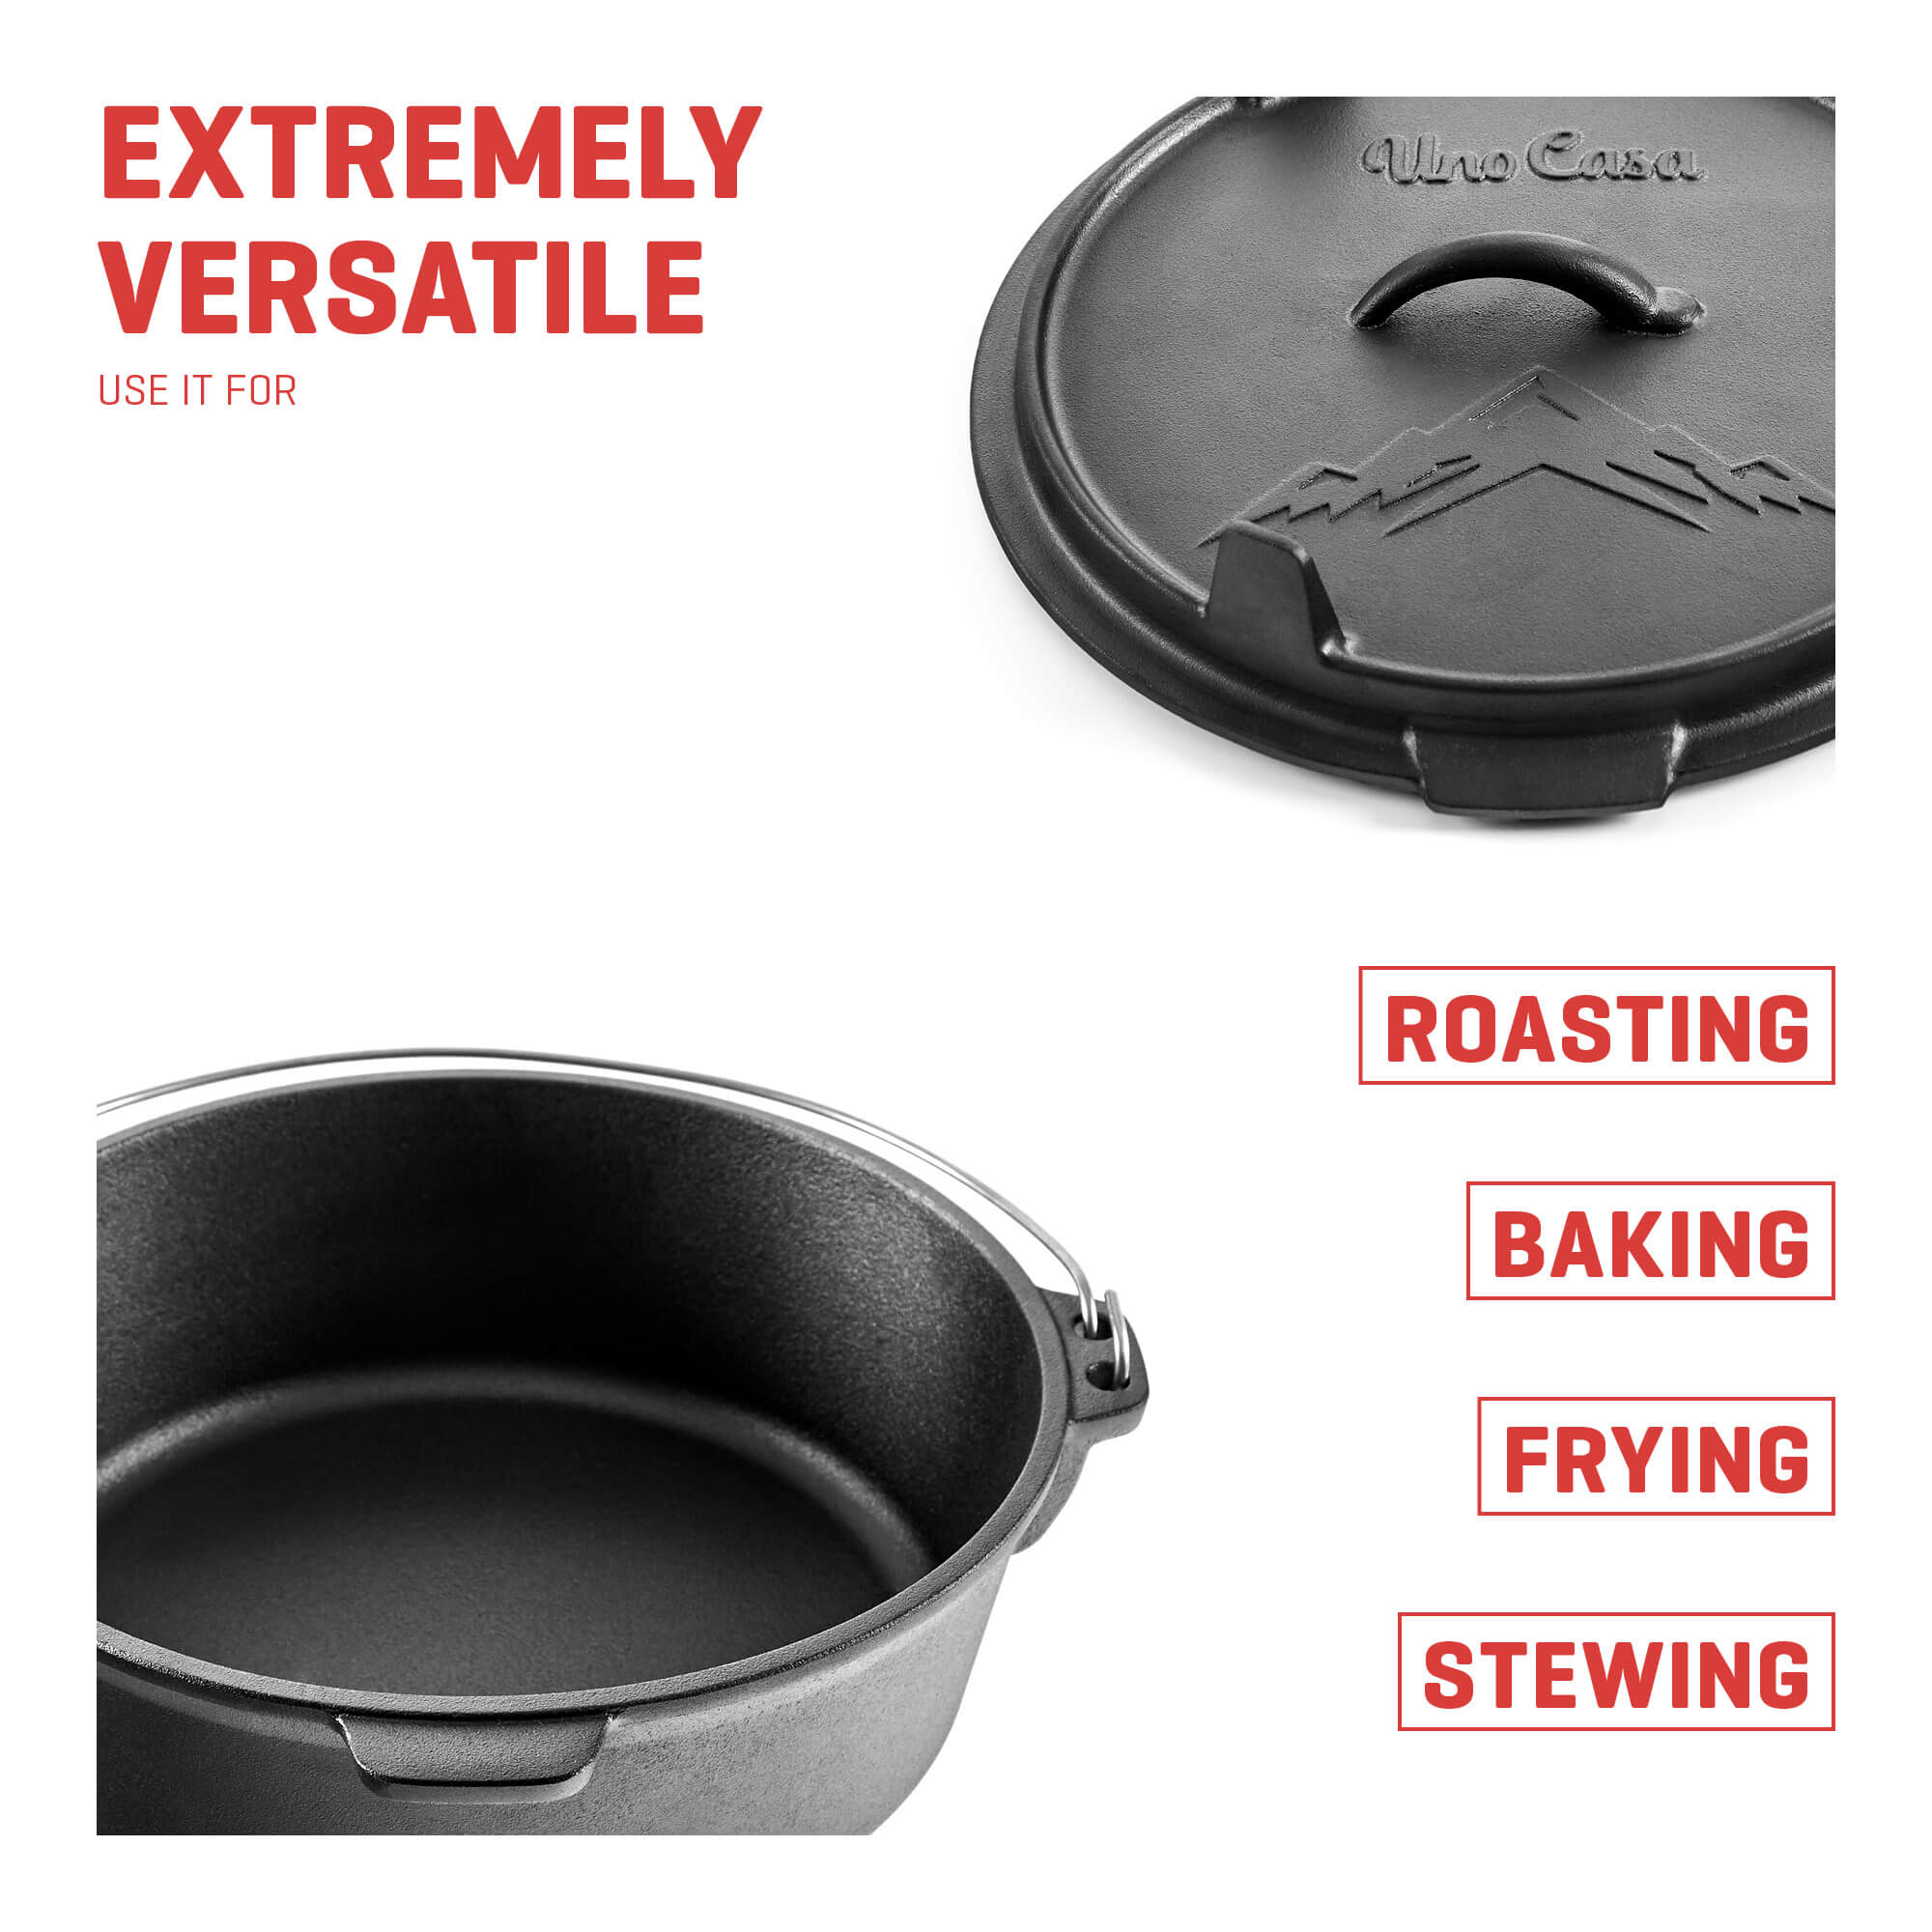 camping dutch oven with lid extremely versatile